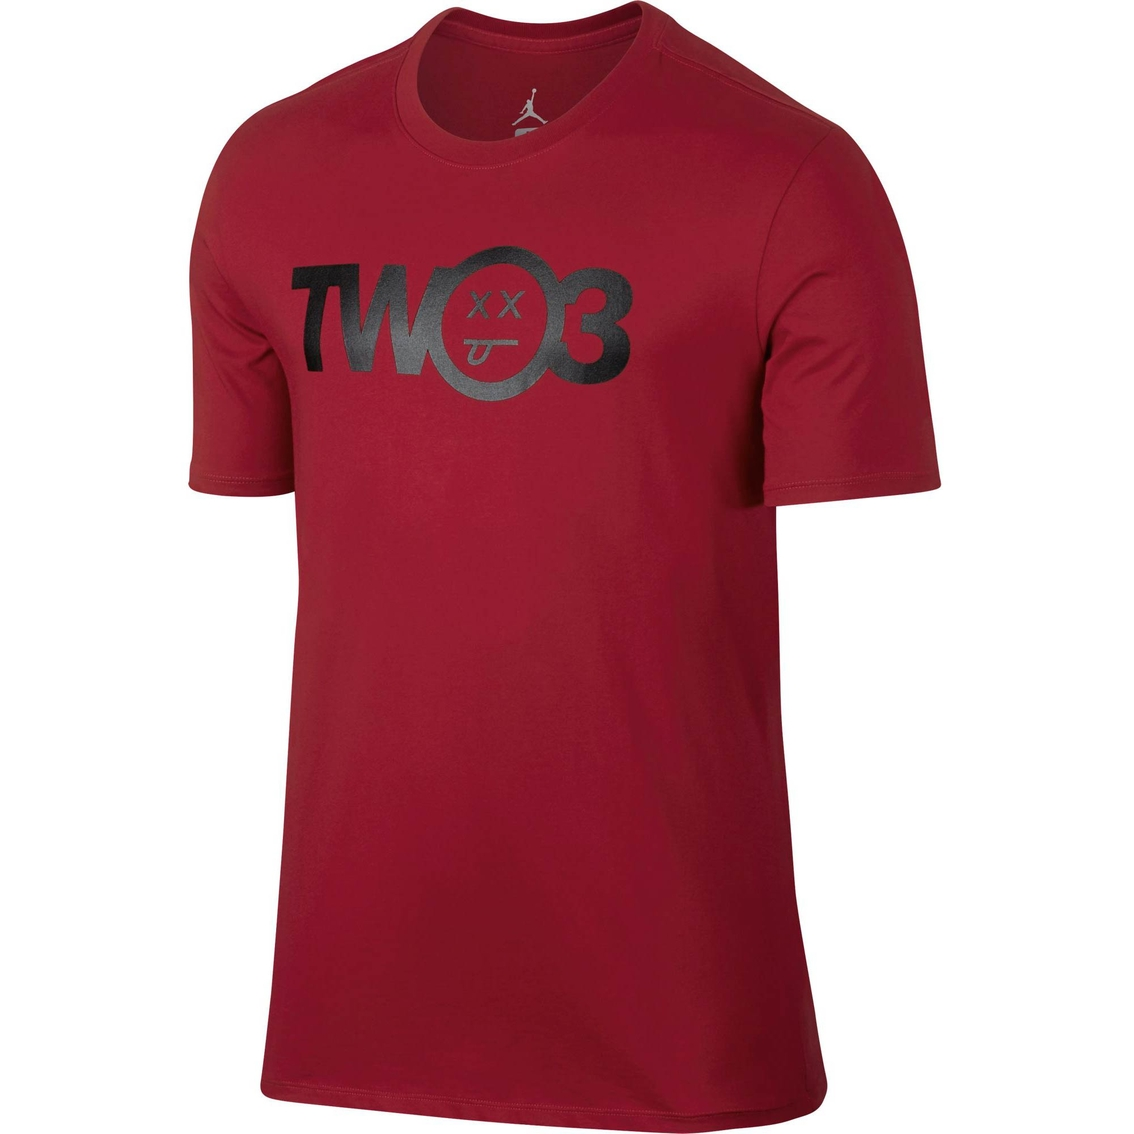 694f0063fd7 Air Jordan 12 Two-3 Tee   Shirts   Father's Day Shop   Shop The Exchange